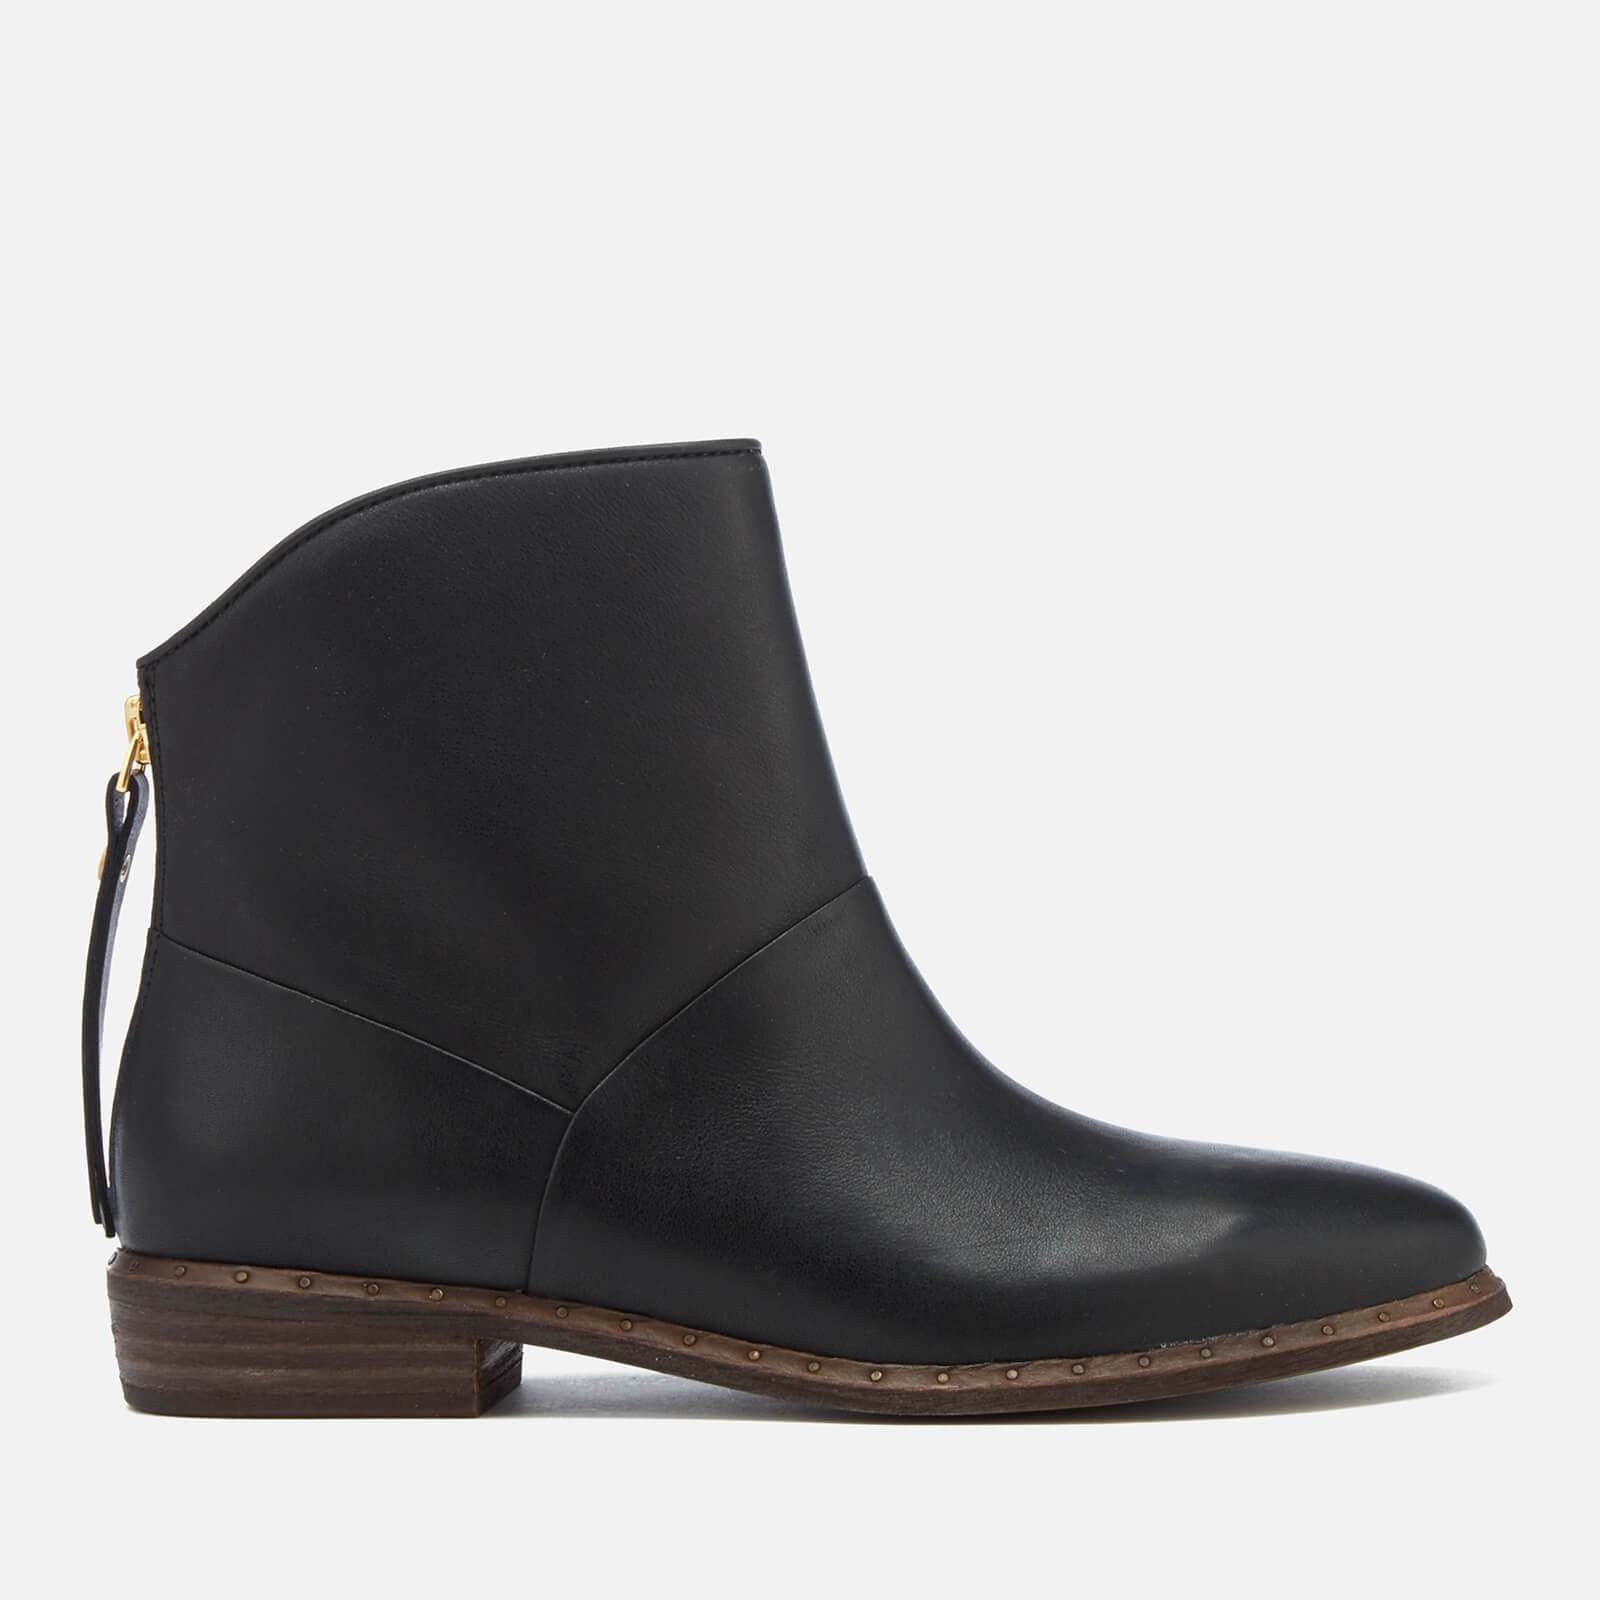 7ab014ad141 UGG Women's Bruno Leather Ankle Boots - Black